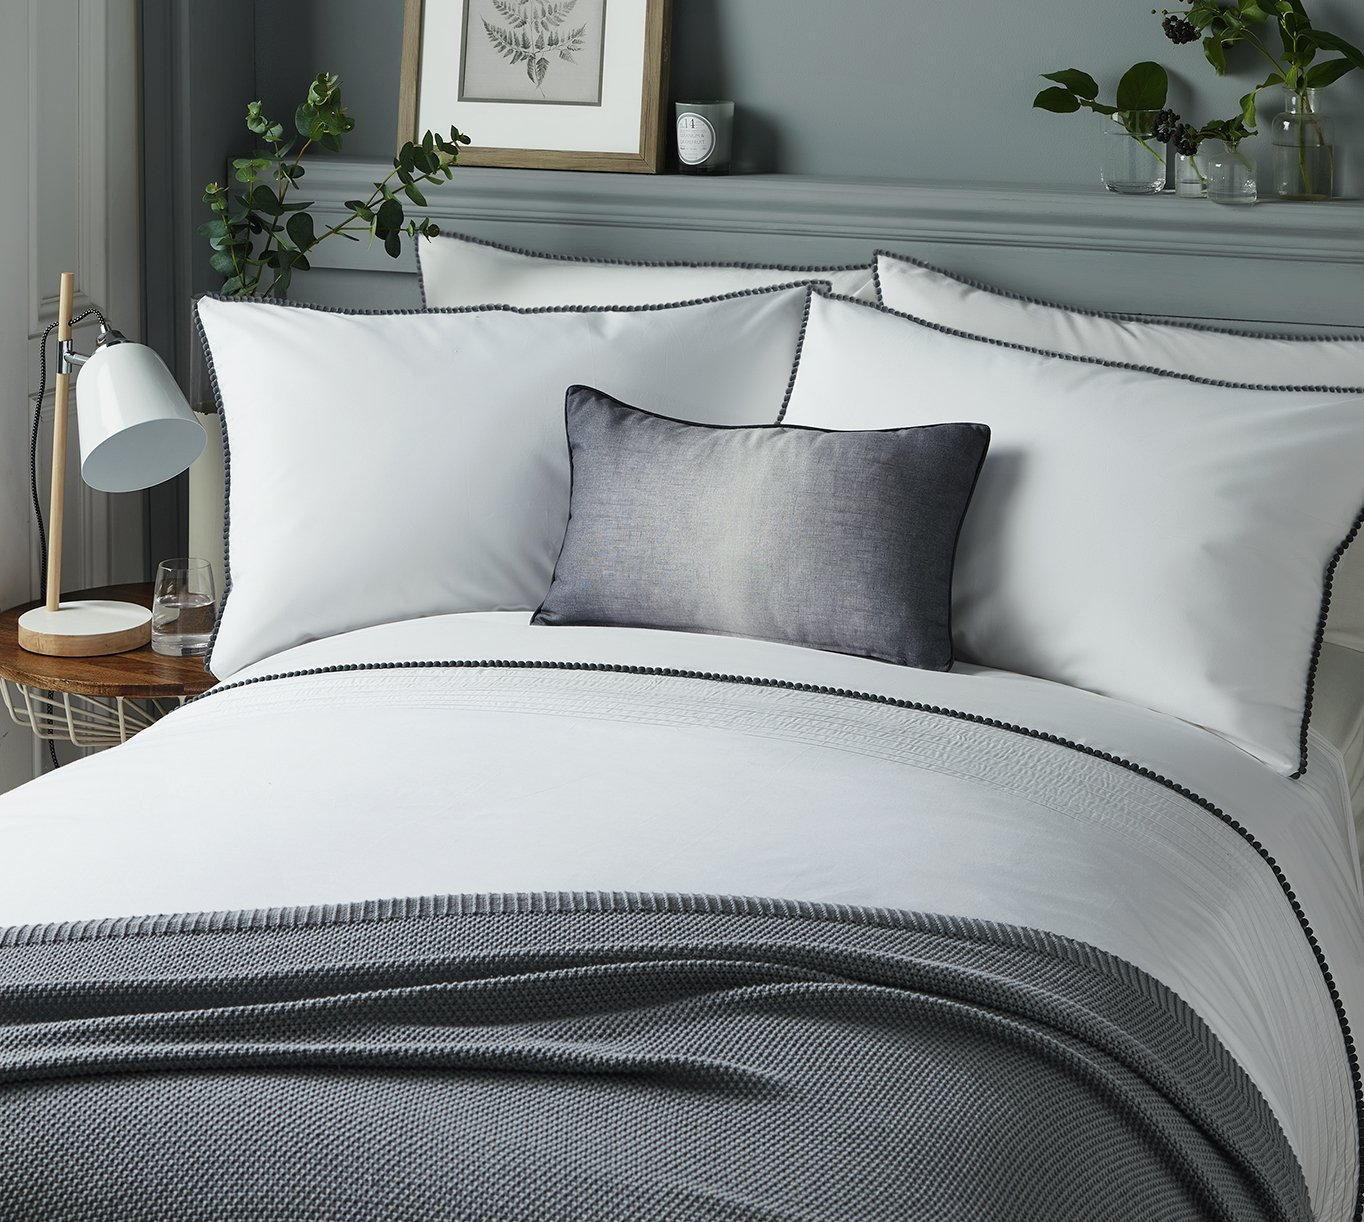 Serene Pom Pom Grey Bedding Set - Superking